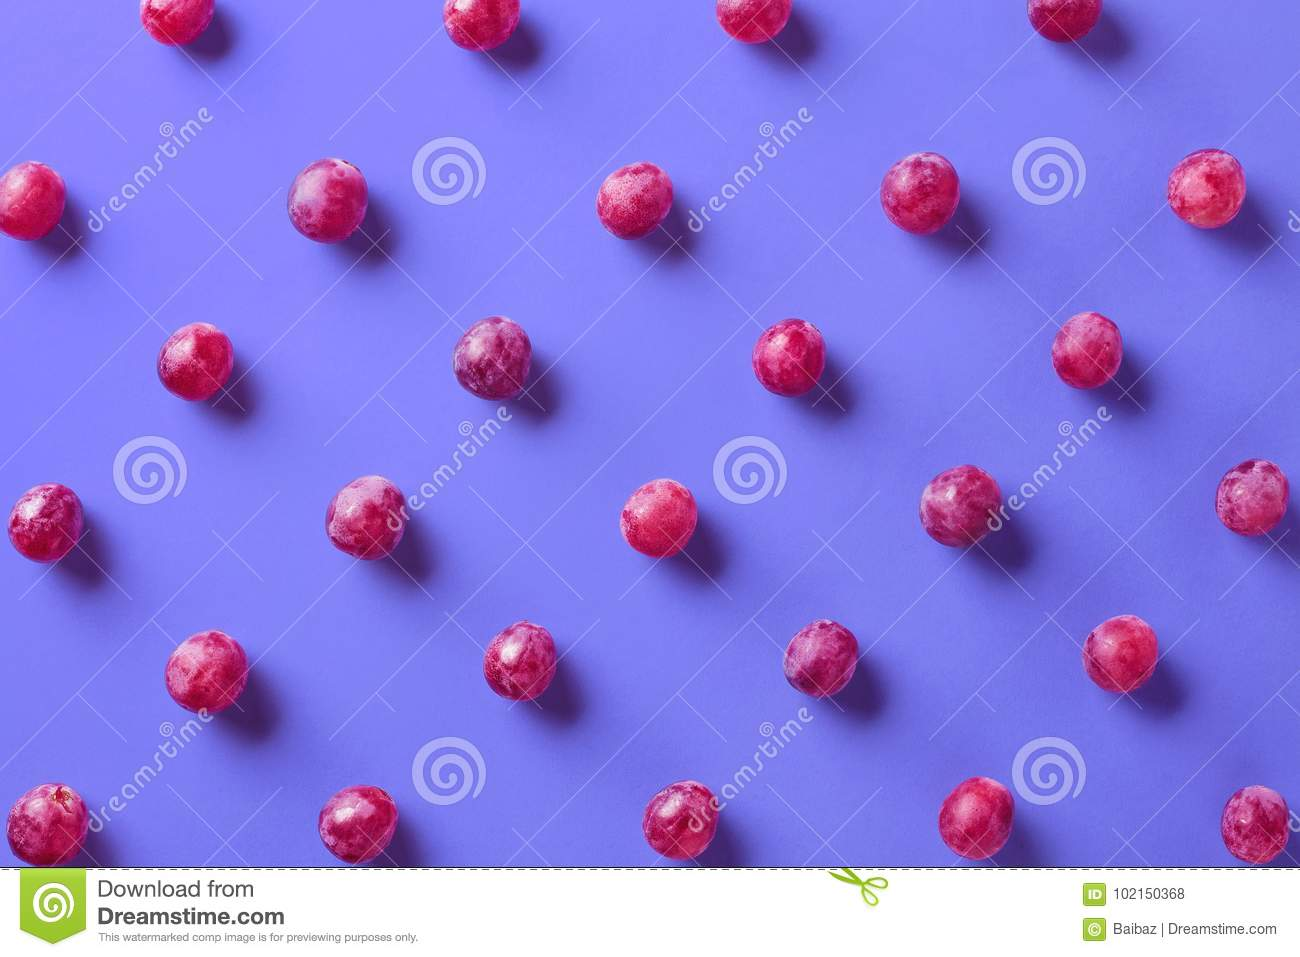 Colorful pattern of grapes